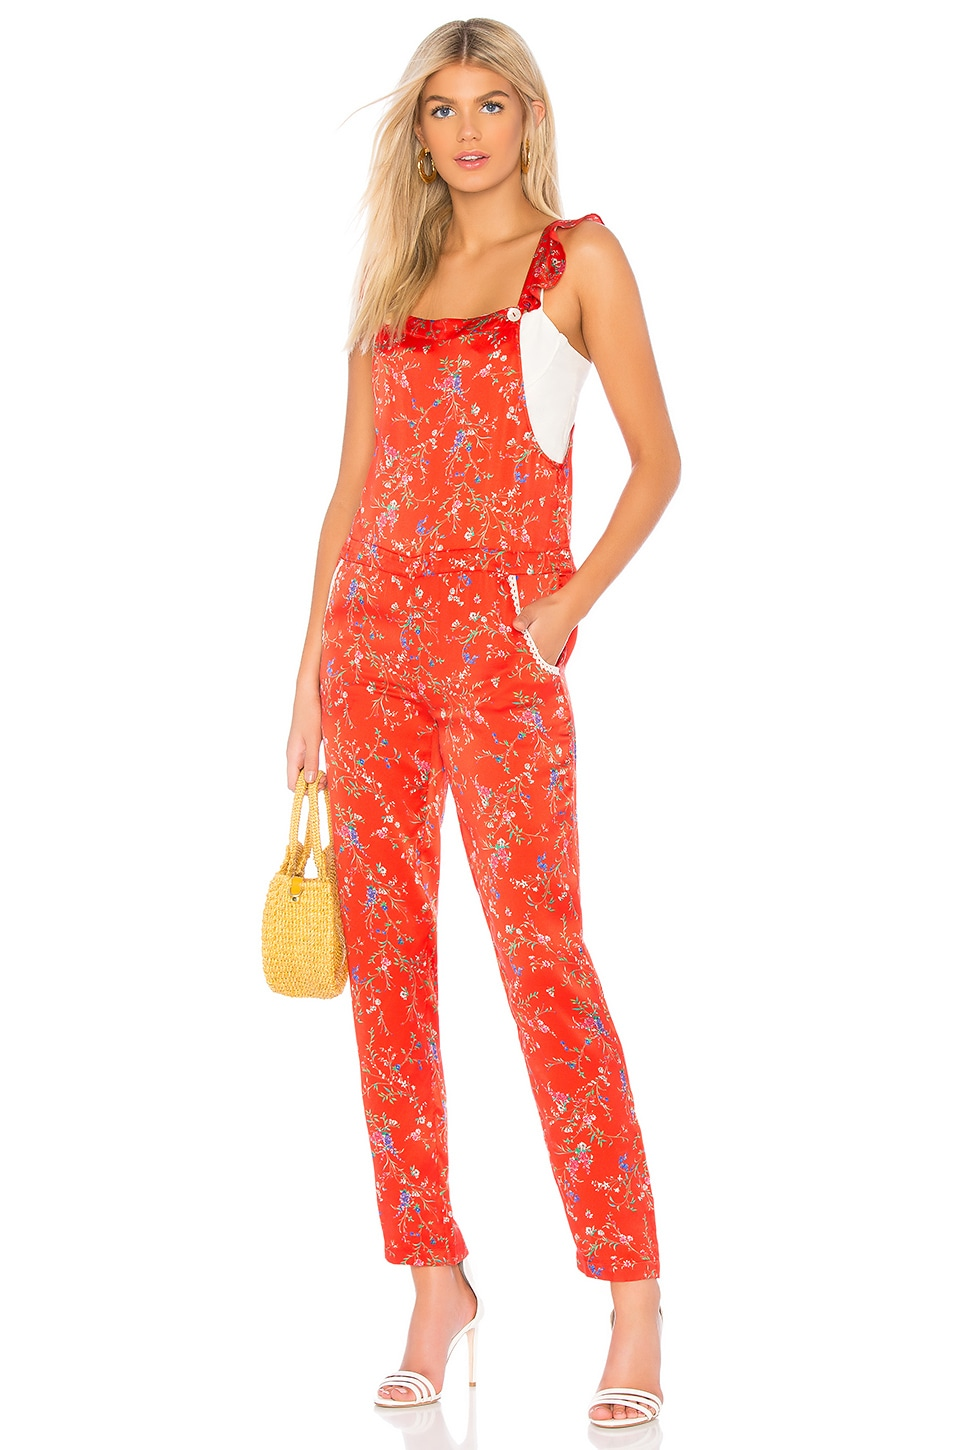 PALOMA BLUE Amalfi Overalls in Red